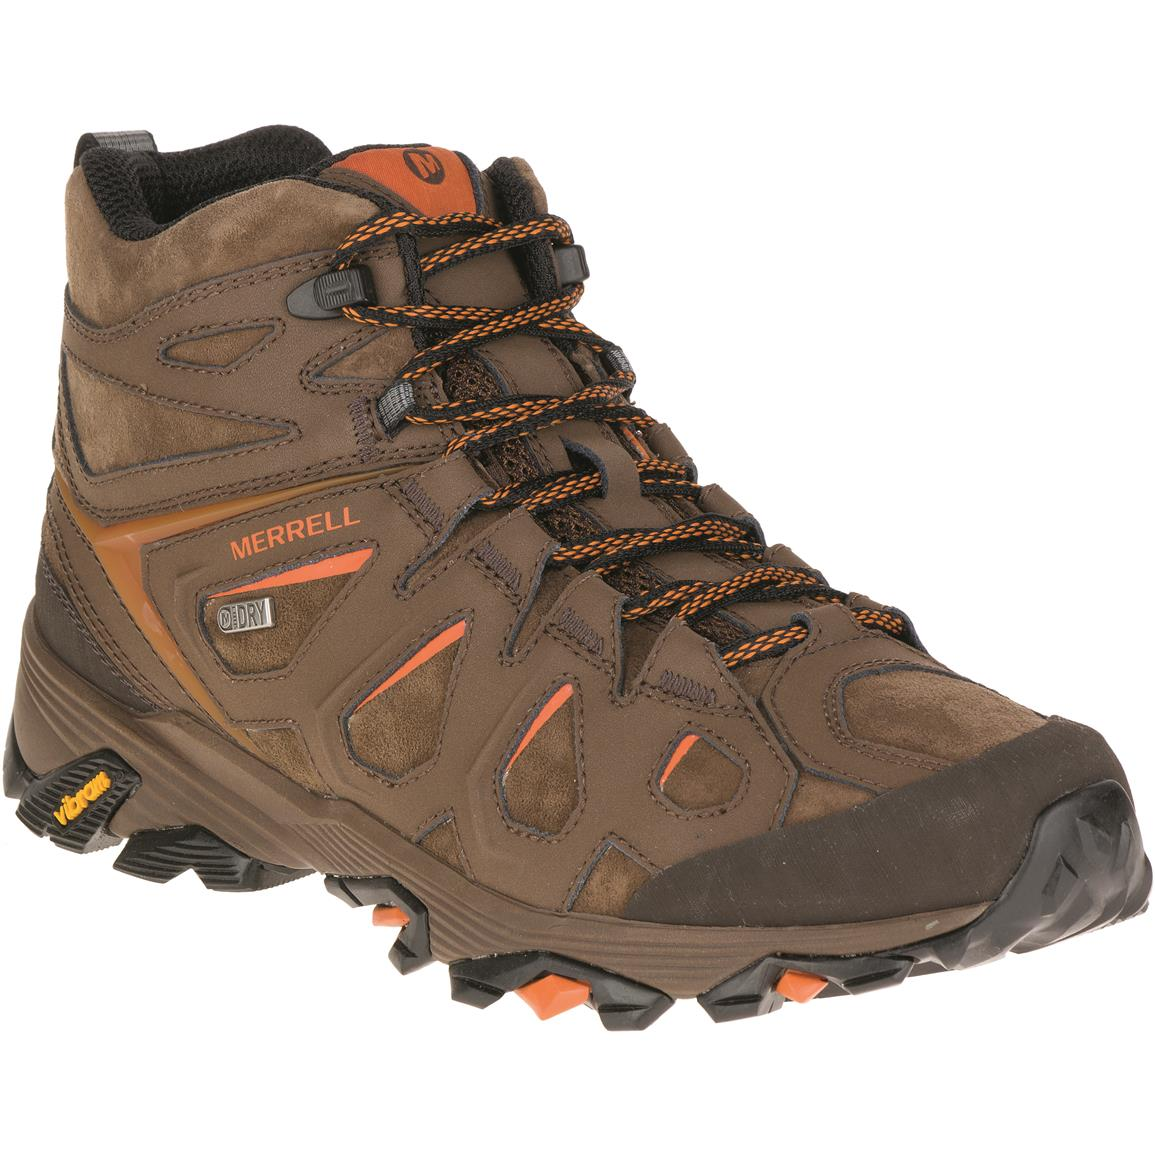 Merrell Men's Moab FST Leather Mid Waterproof Hiking Boots, Dark Earth